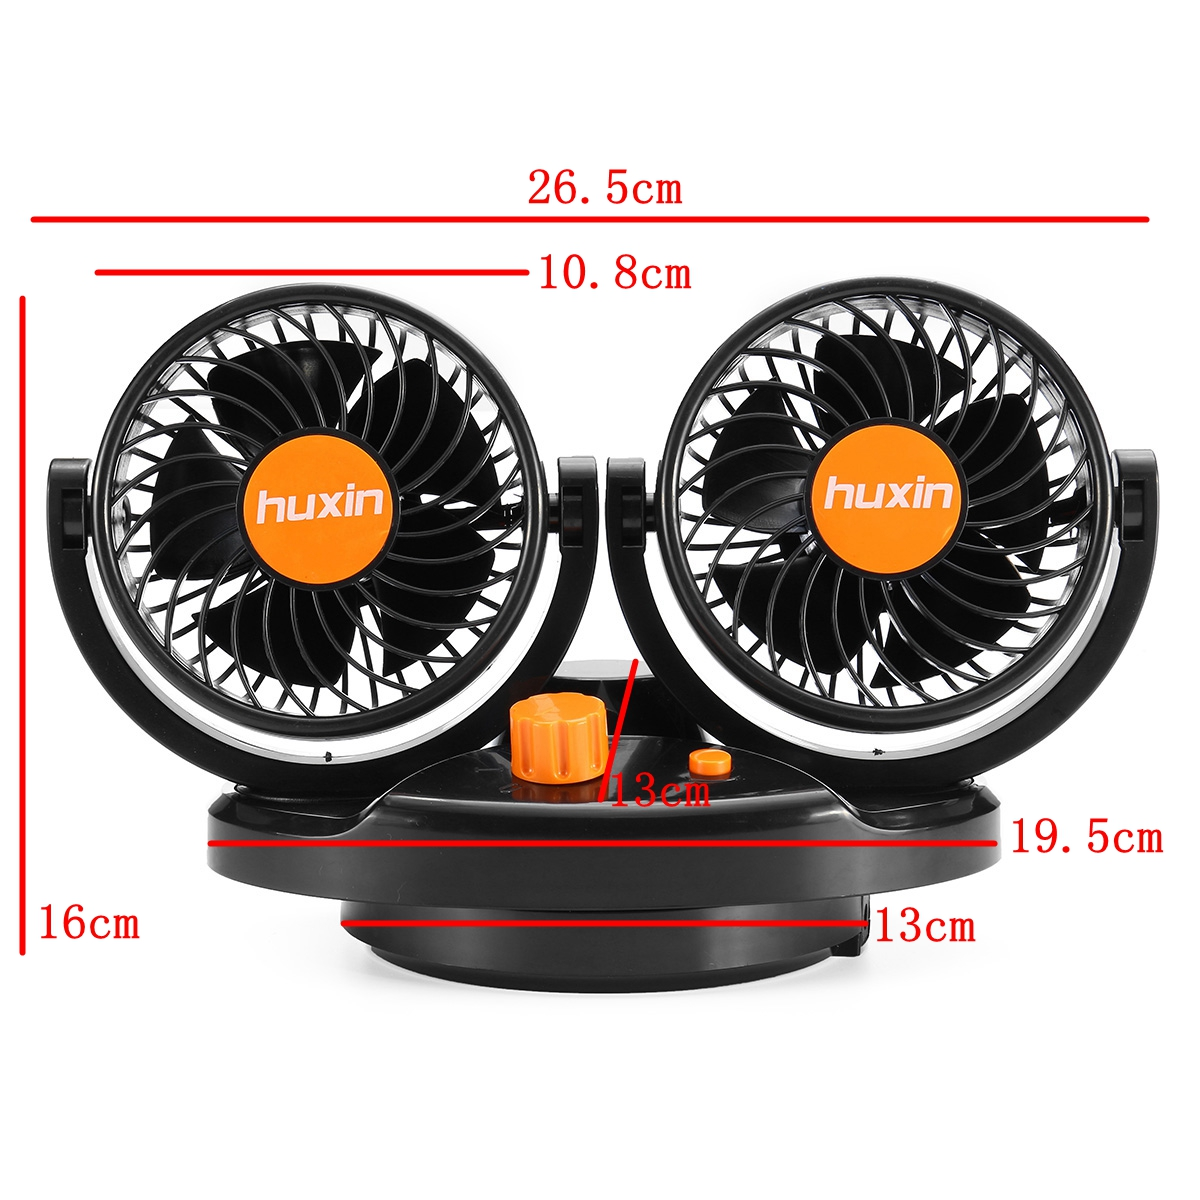 4 Inch 24V Orange Mini Auto 360 Degree Rotating Air Cooling Dual Fan Adjustable Low Noise